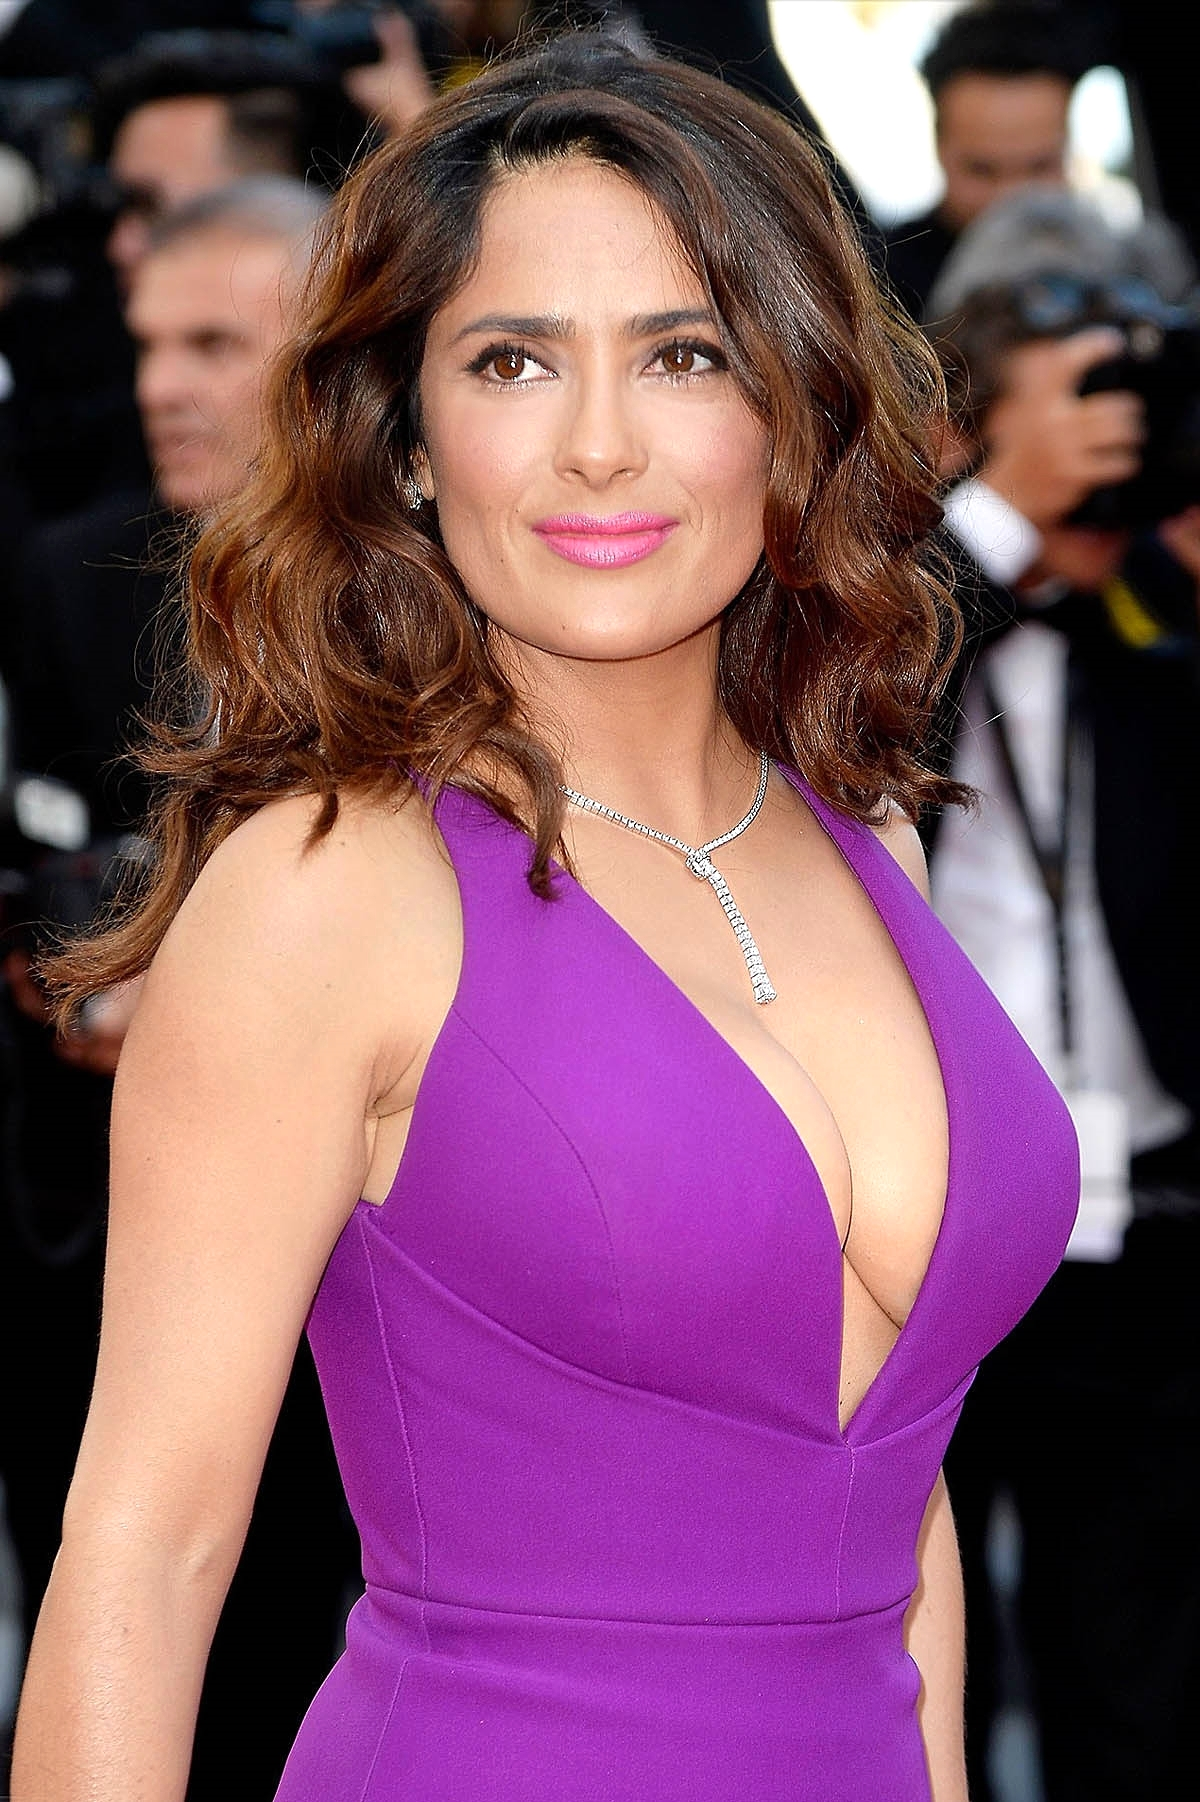 Salma Hayek at the 'Rocco and his Brothers' premiere                    Photo by Getty